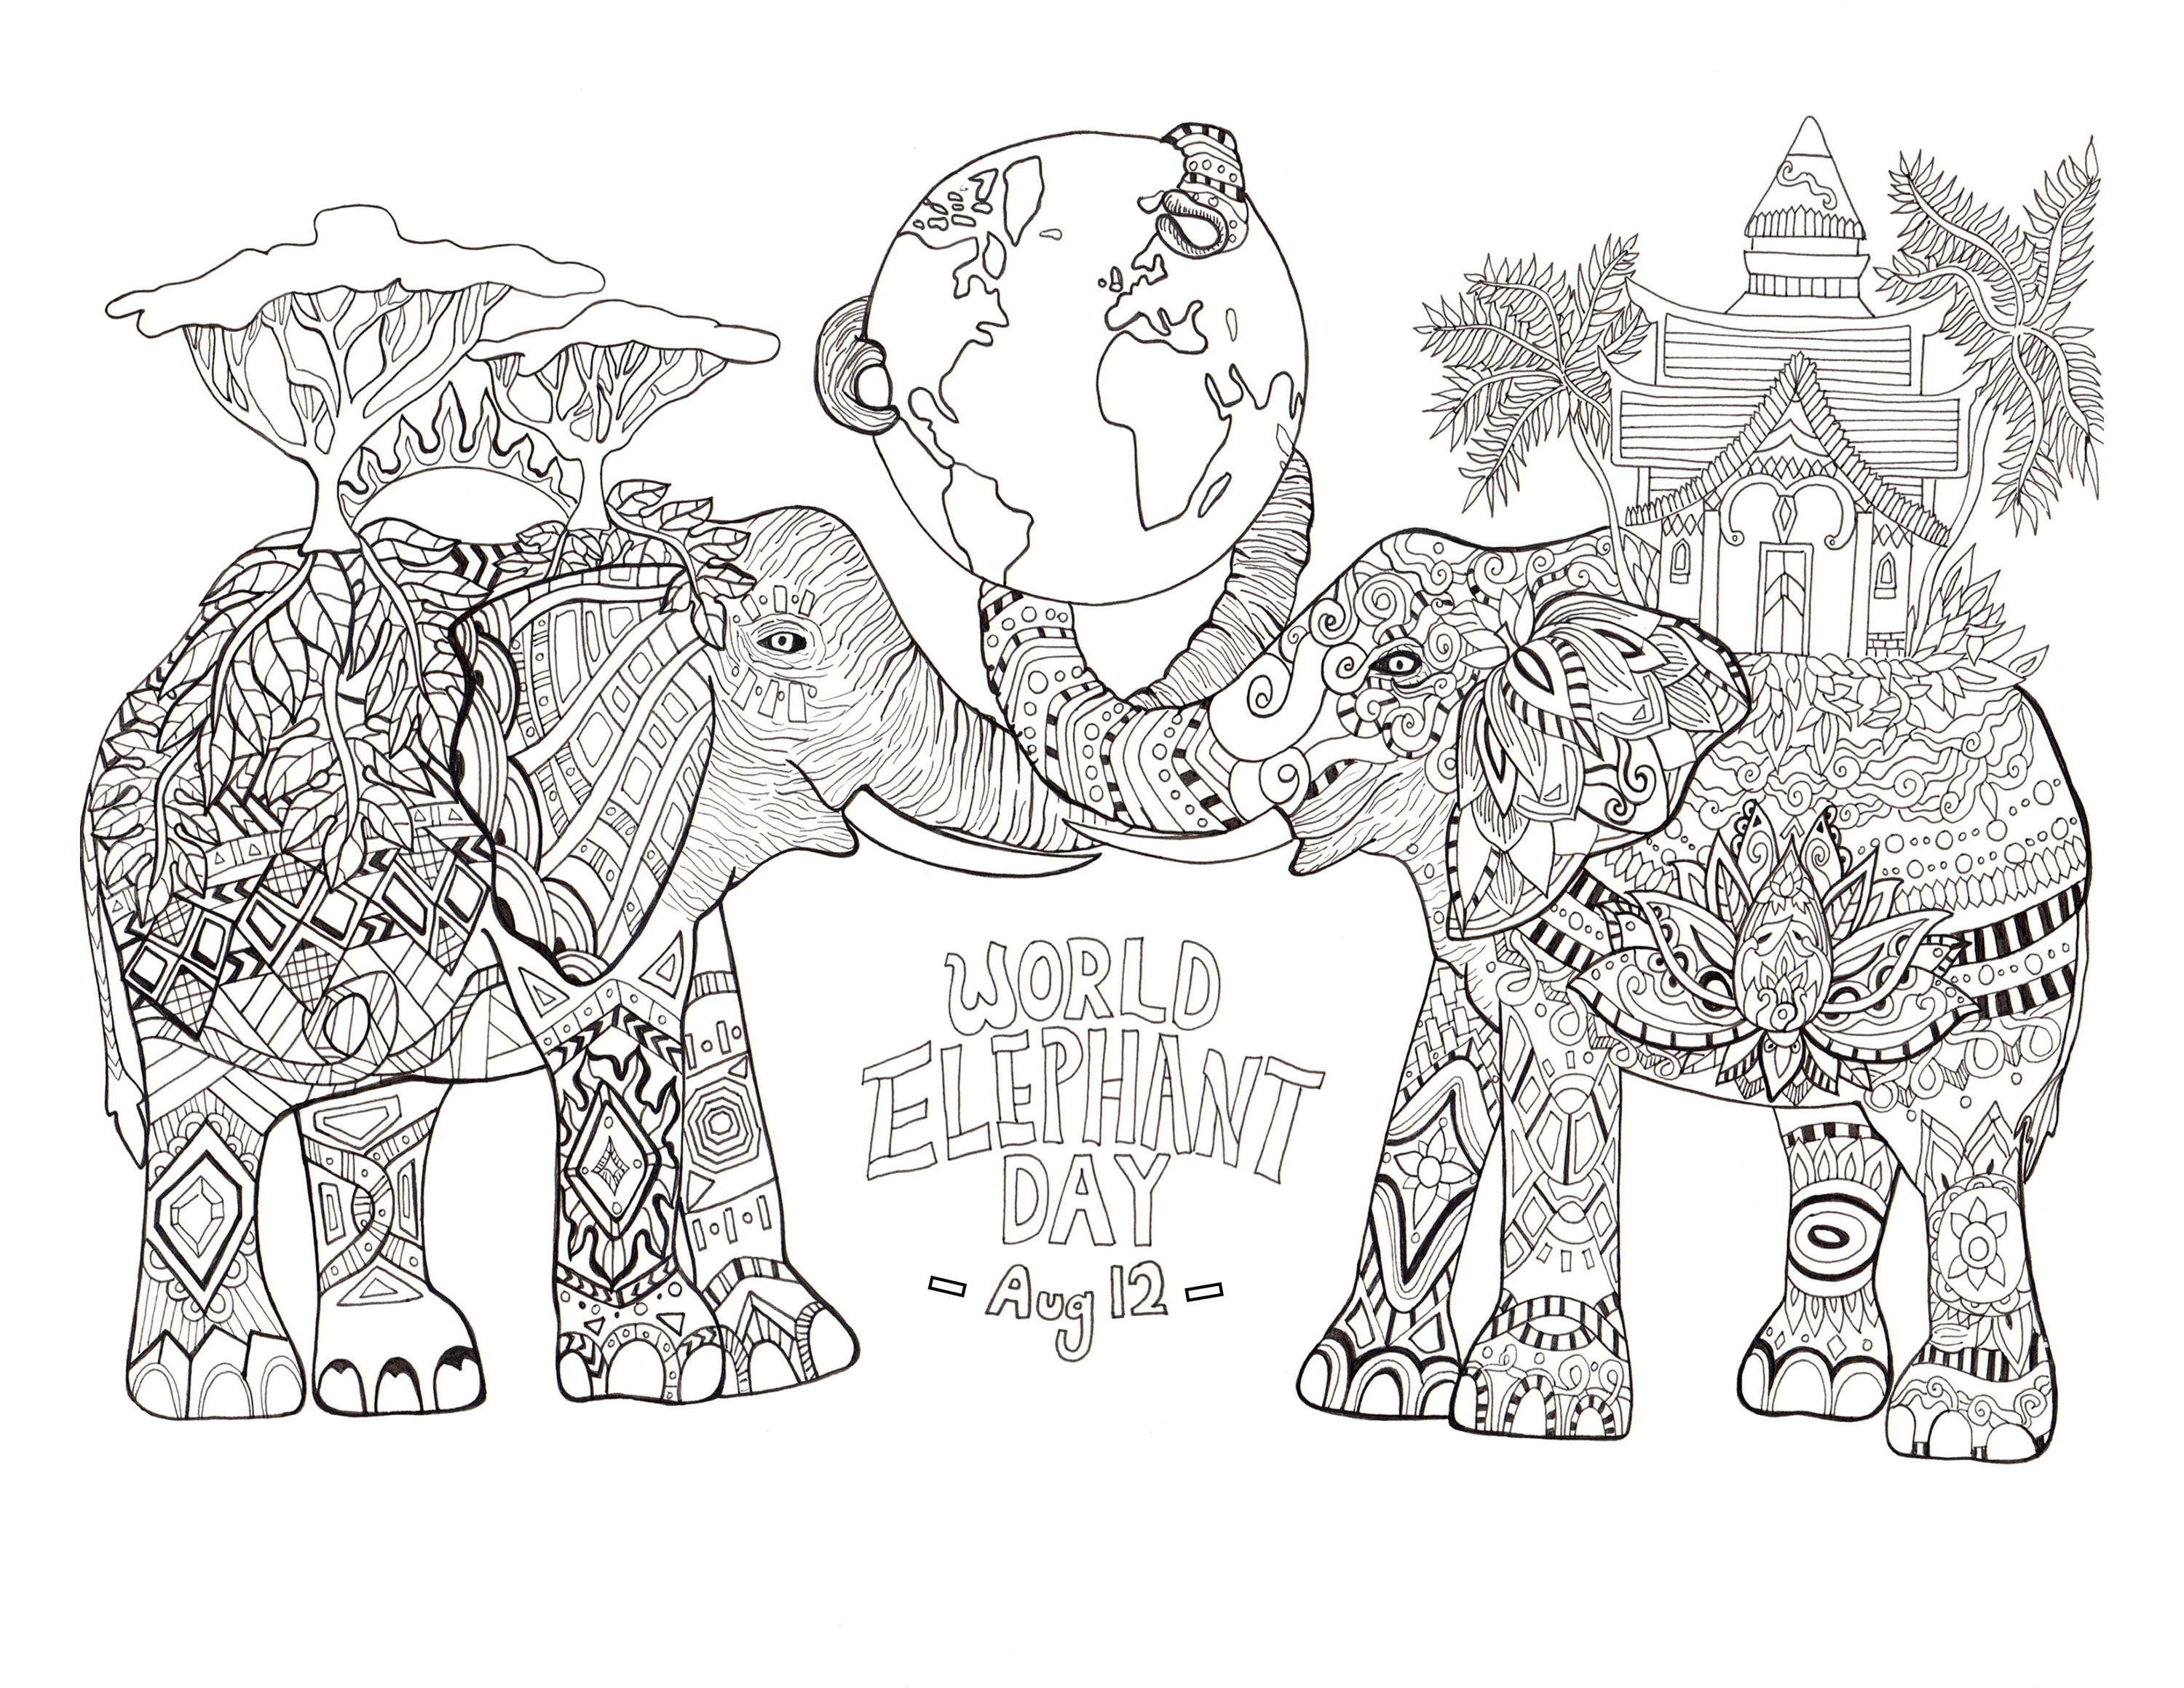 Coloring page drawn by Rylee Postulo for the World Elephant Day (Aug 12)